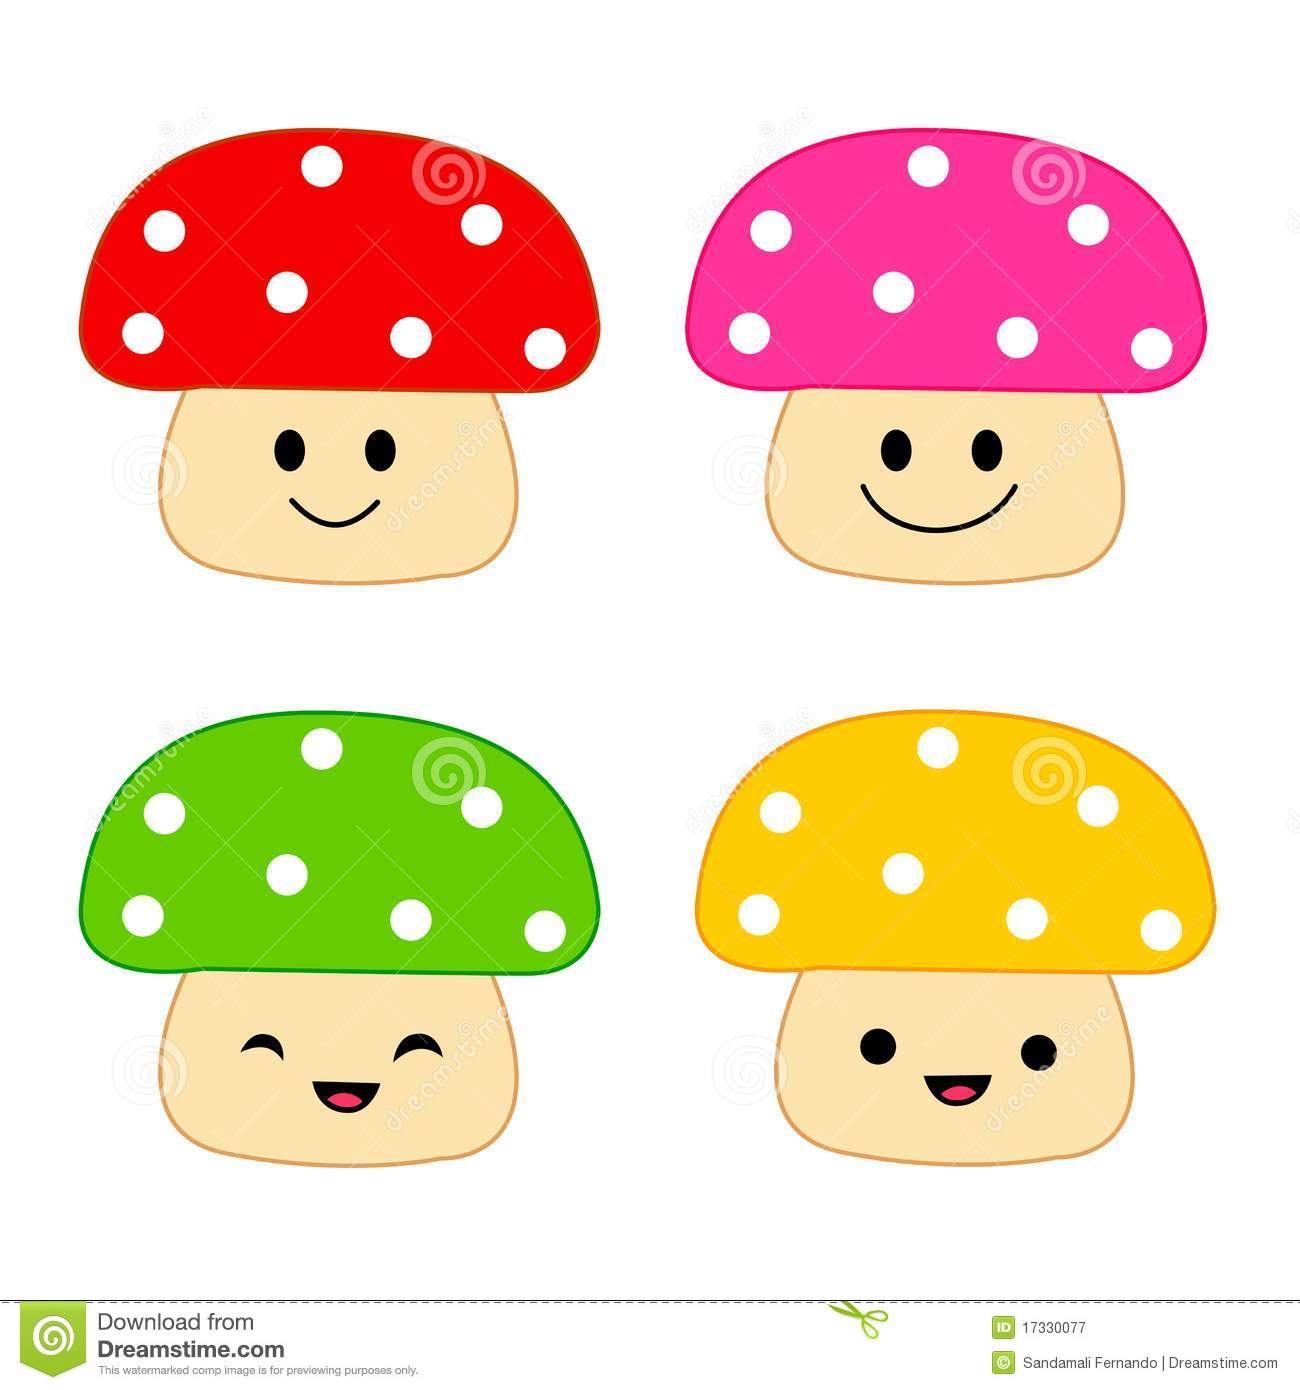 Illustration of a group of colorful mushrooms with different facial ...